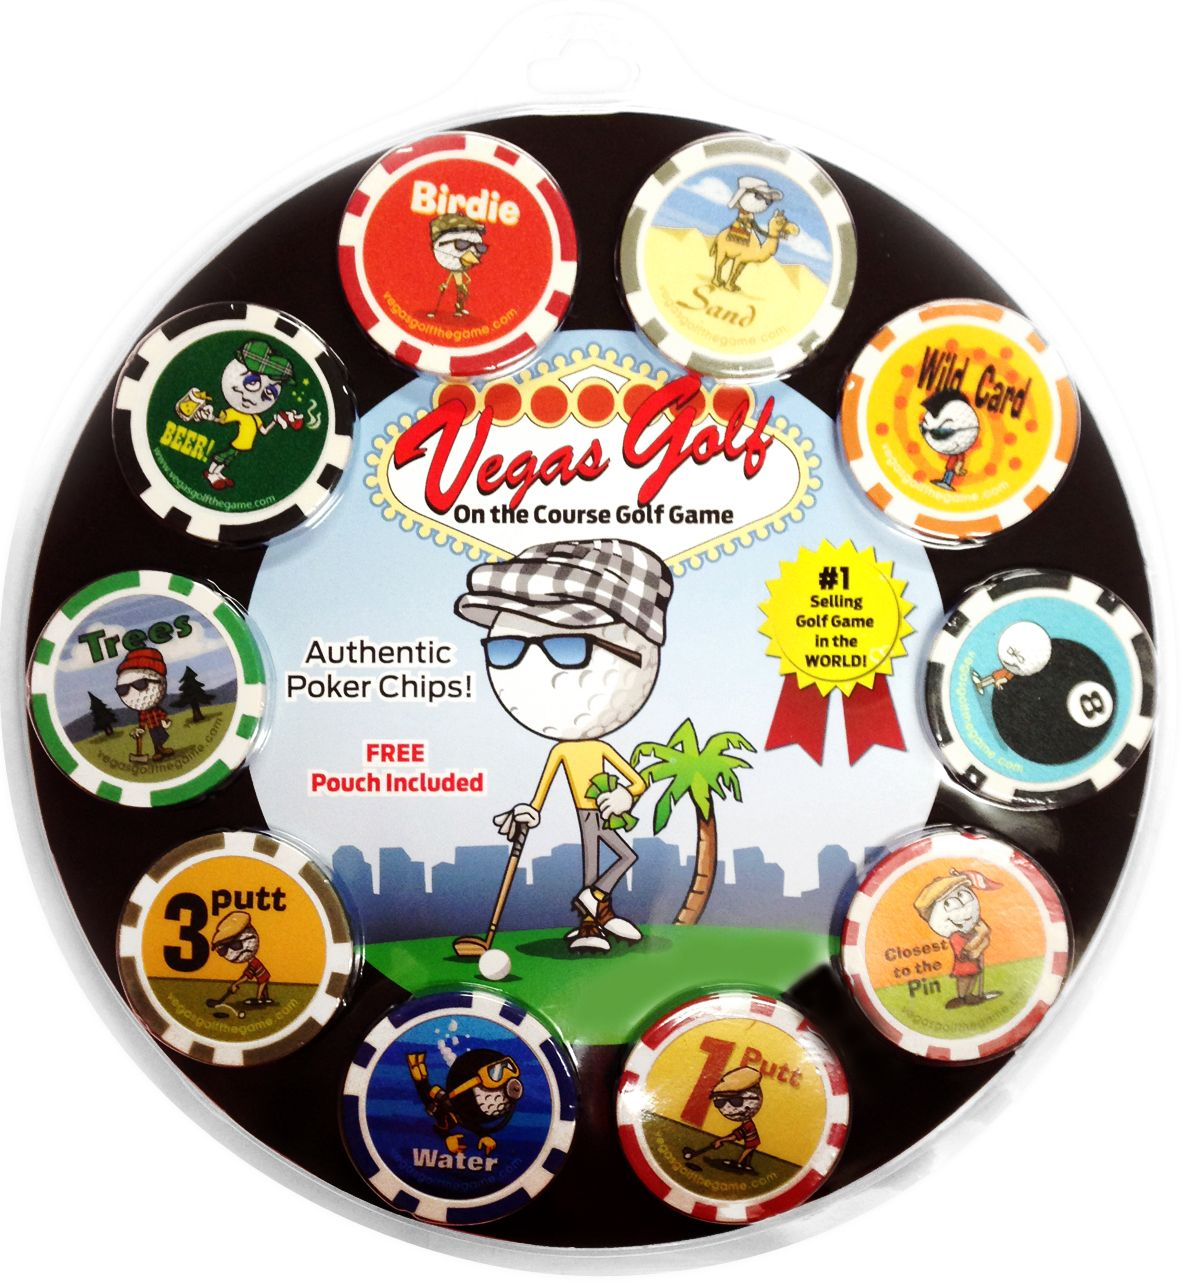 Poker chip golf game rules